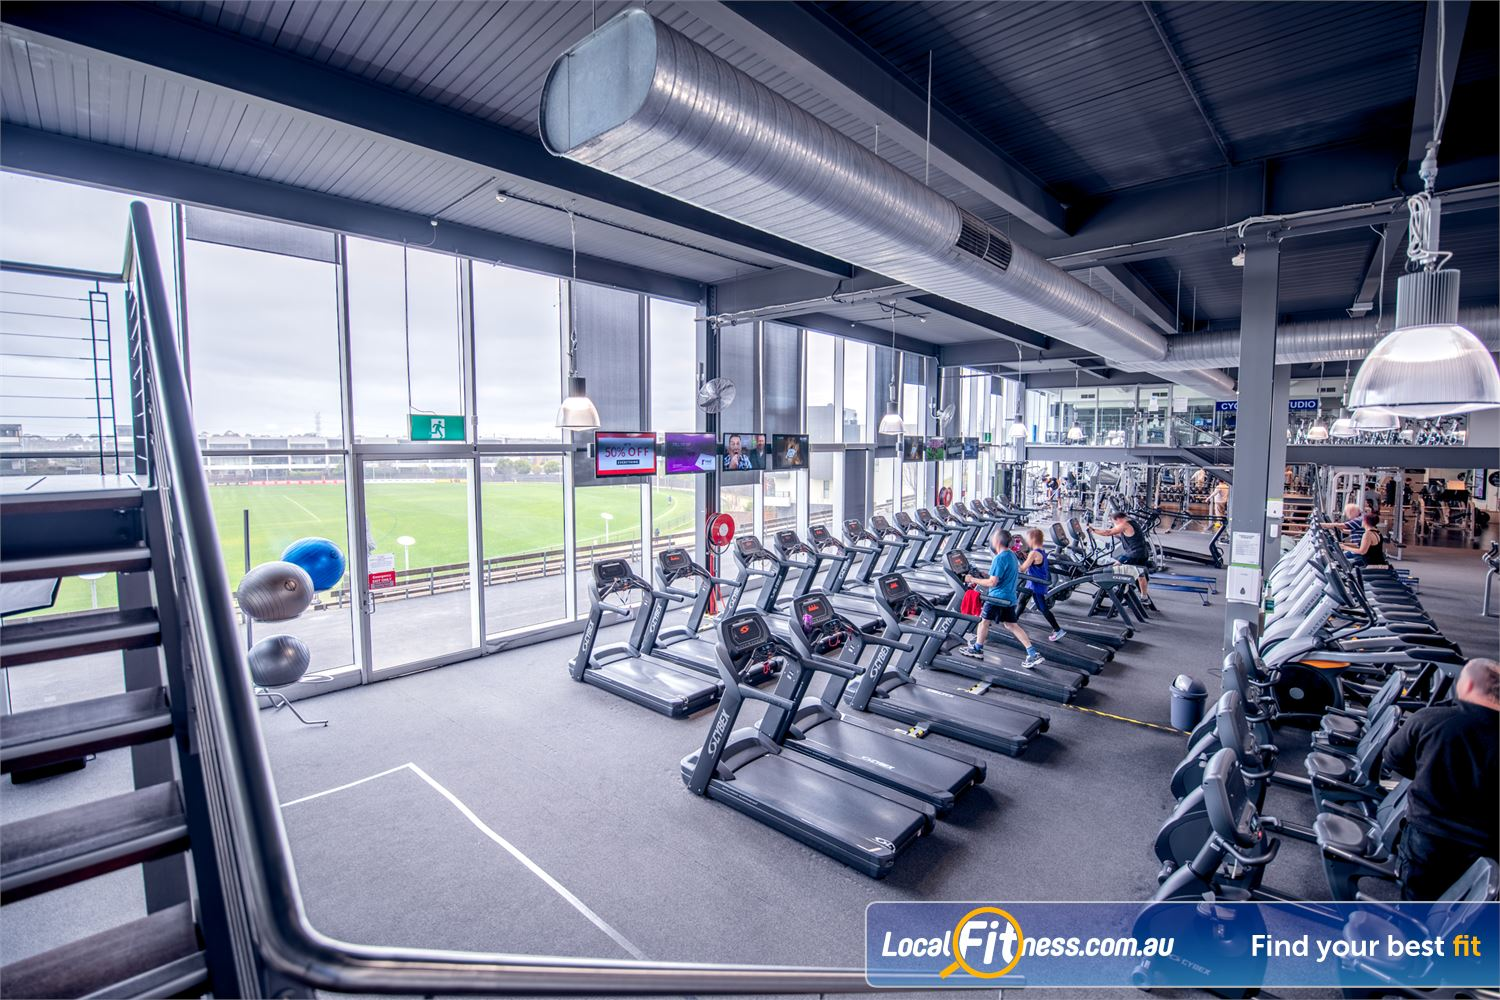 Goodlife Health Clubs Waverley Park Mulgrave Welcome to the iconic Goodlife Waverley Park gym.